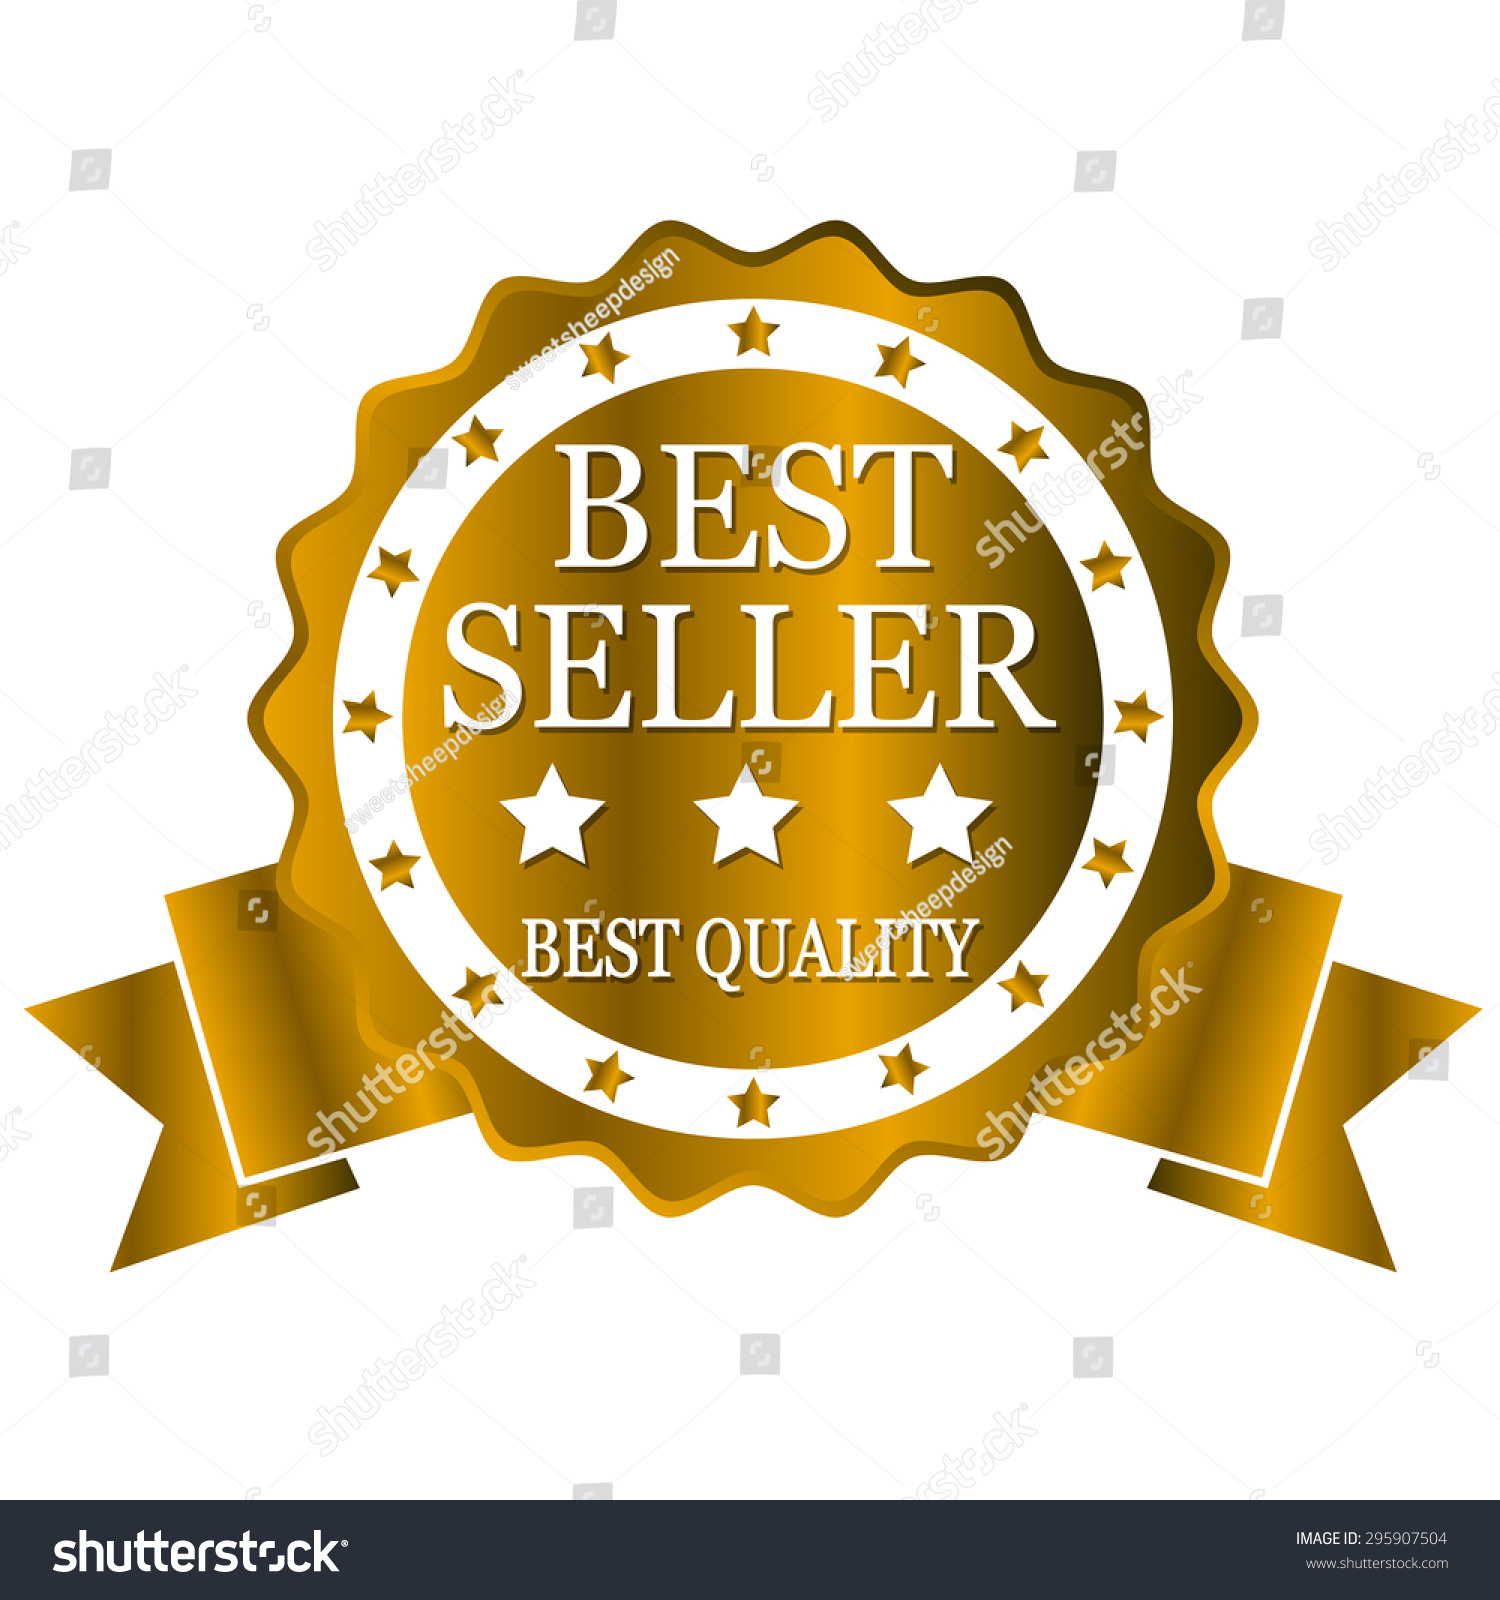 depositphotos rendering background white quality word gold illustration stock on high photo